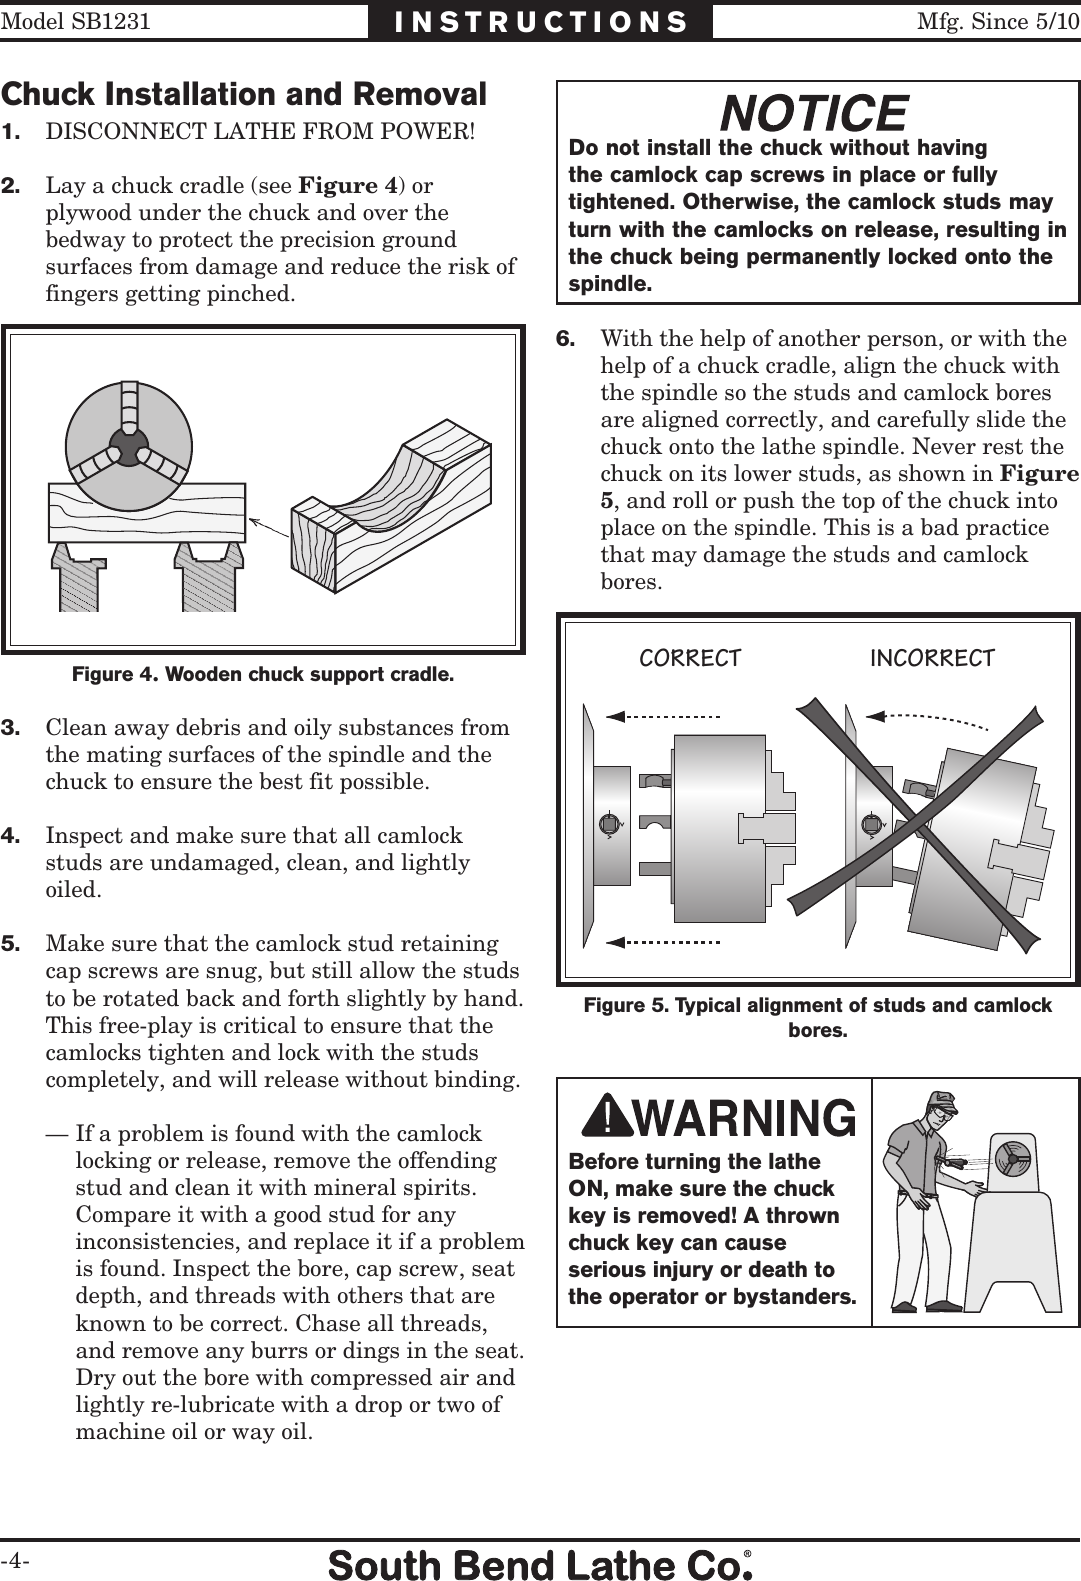 Southbend Sb1231 Users Manual South Bend Lathe Wiring Diagram Get Free Image About Page 4 Of 8